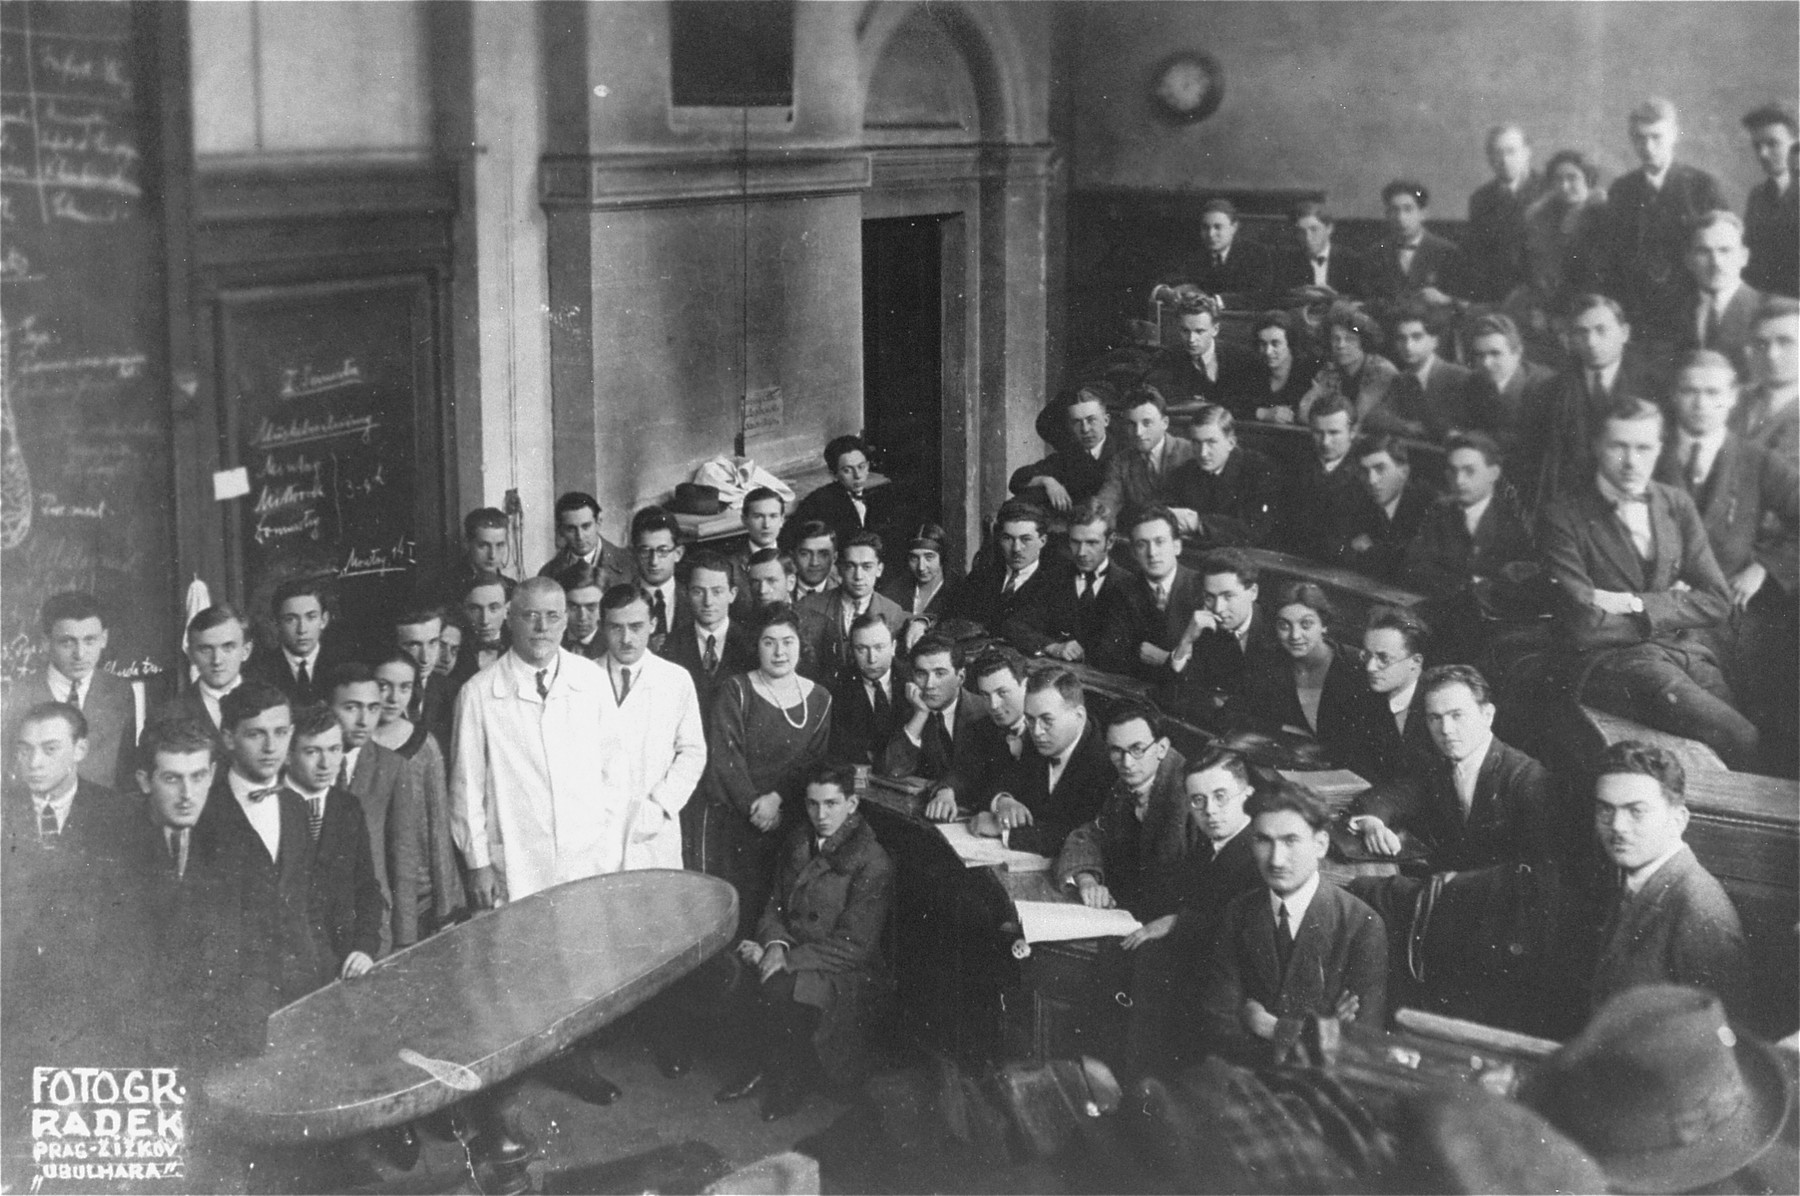 A class of medical students pose in a lecture hall at the Charles University in Prague.  The older gentleman wearing a white coat has been identified as Prof. Otto Grosser, the head of the Institute of Anatomy.